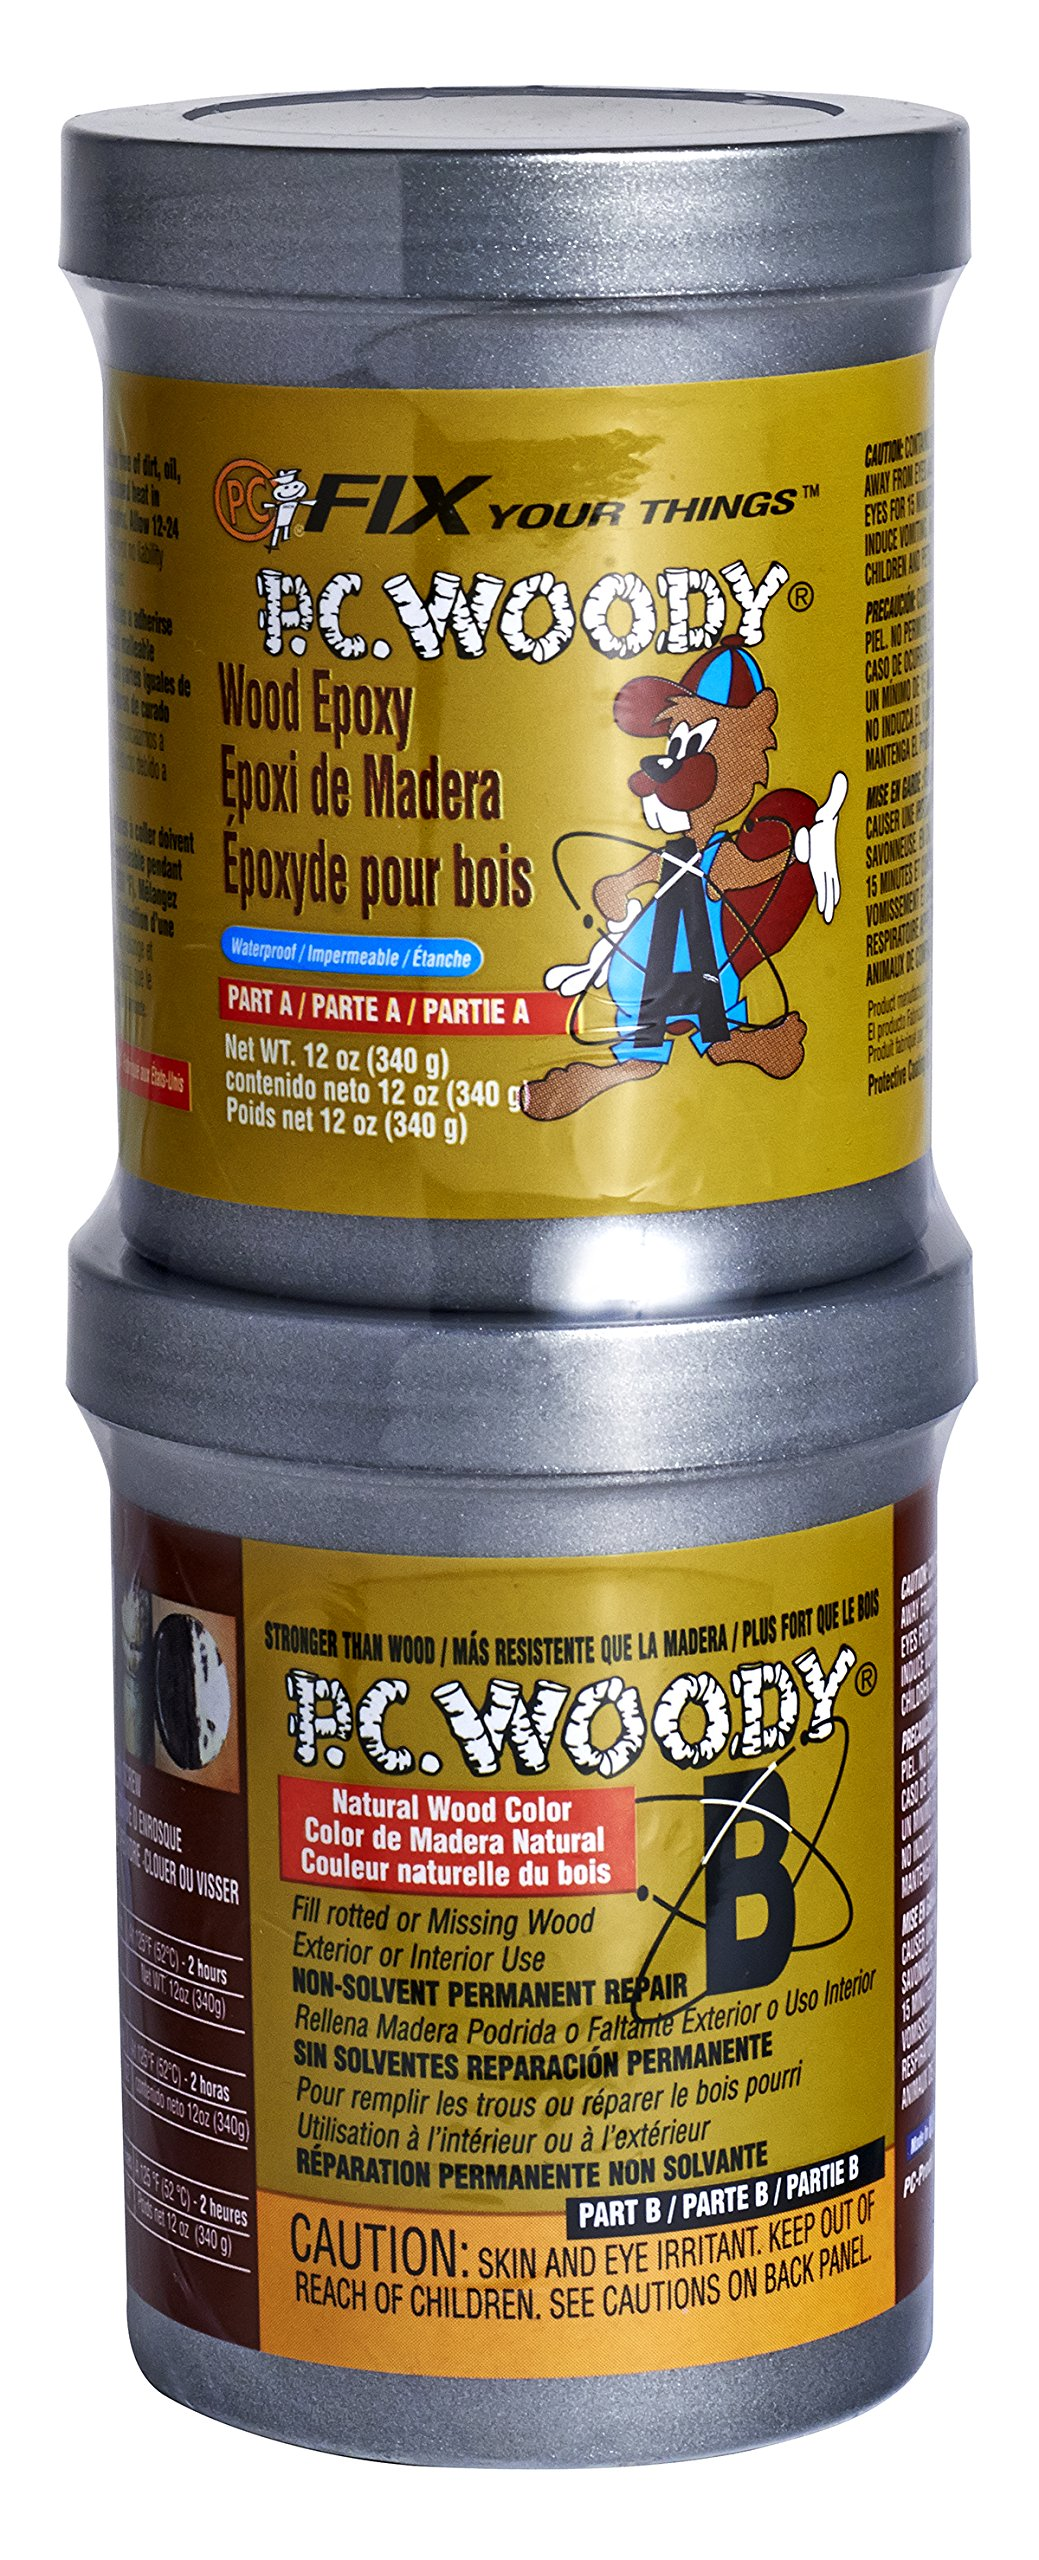 PC Products PC-Woody Wood Repair Epoxy Paste, Two-Part 12oz in Two